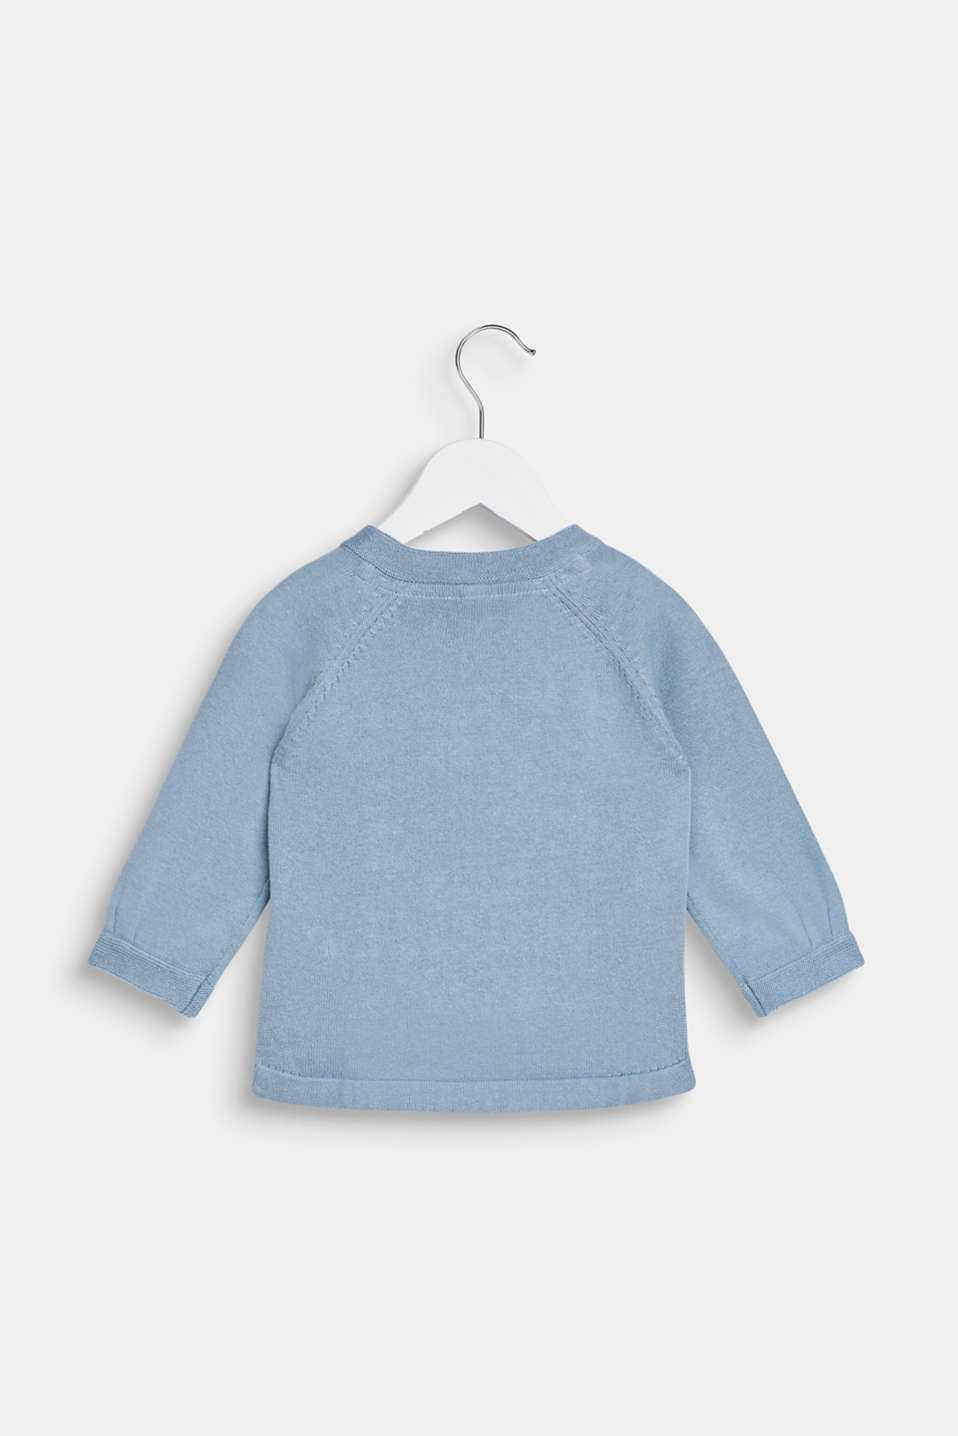 Jumper with llama intarsia, 100% cotton, LCGREY BLUE, detail image number 1